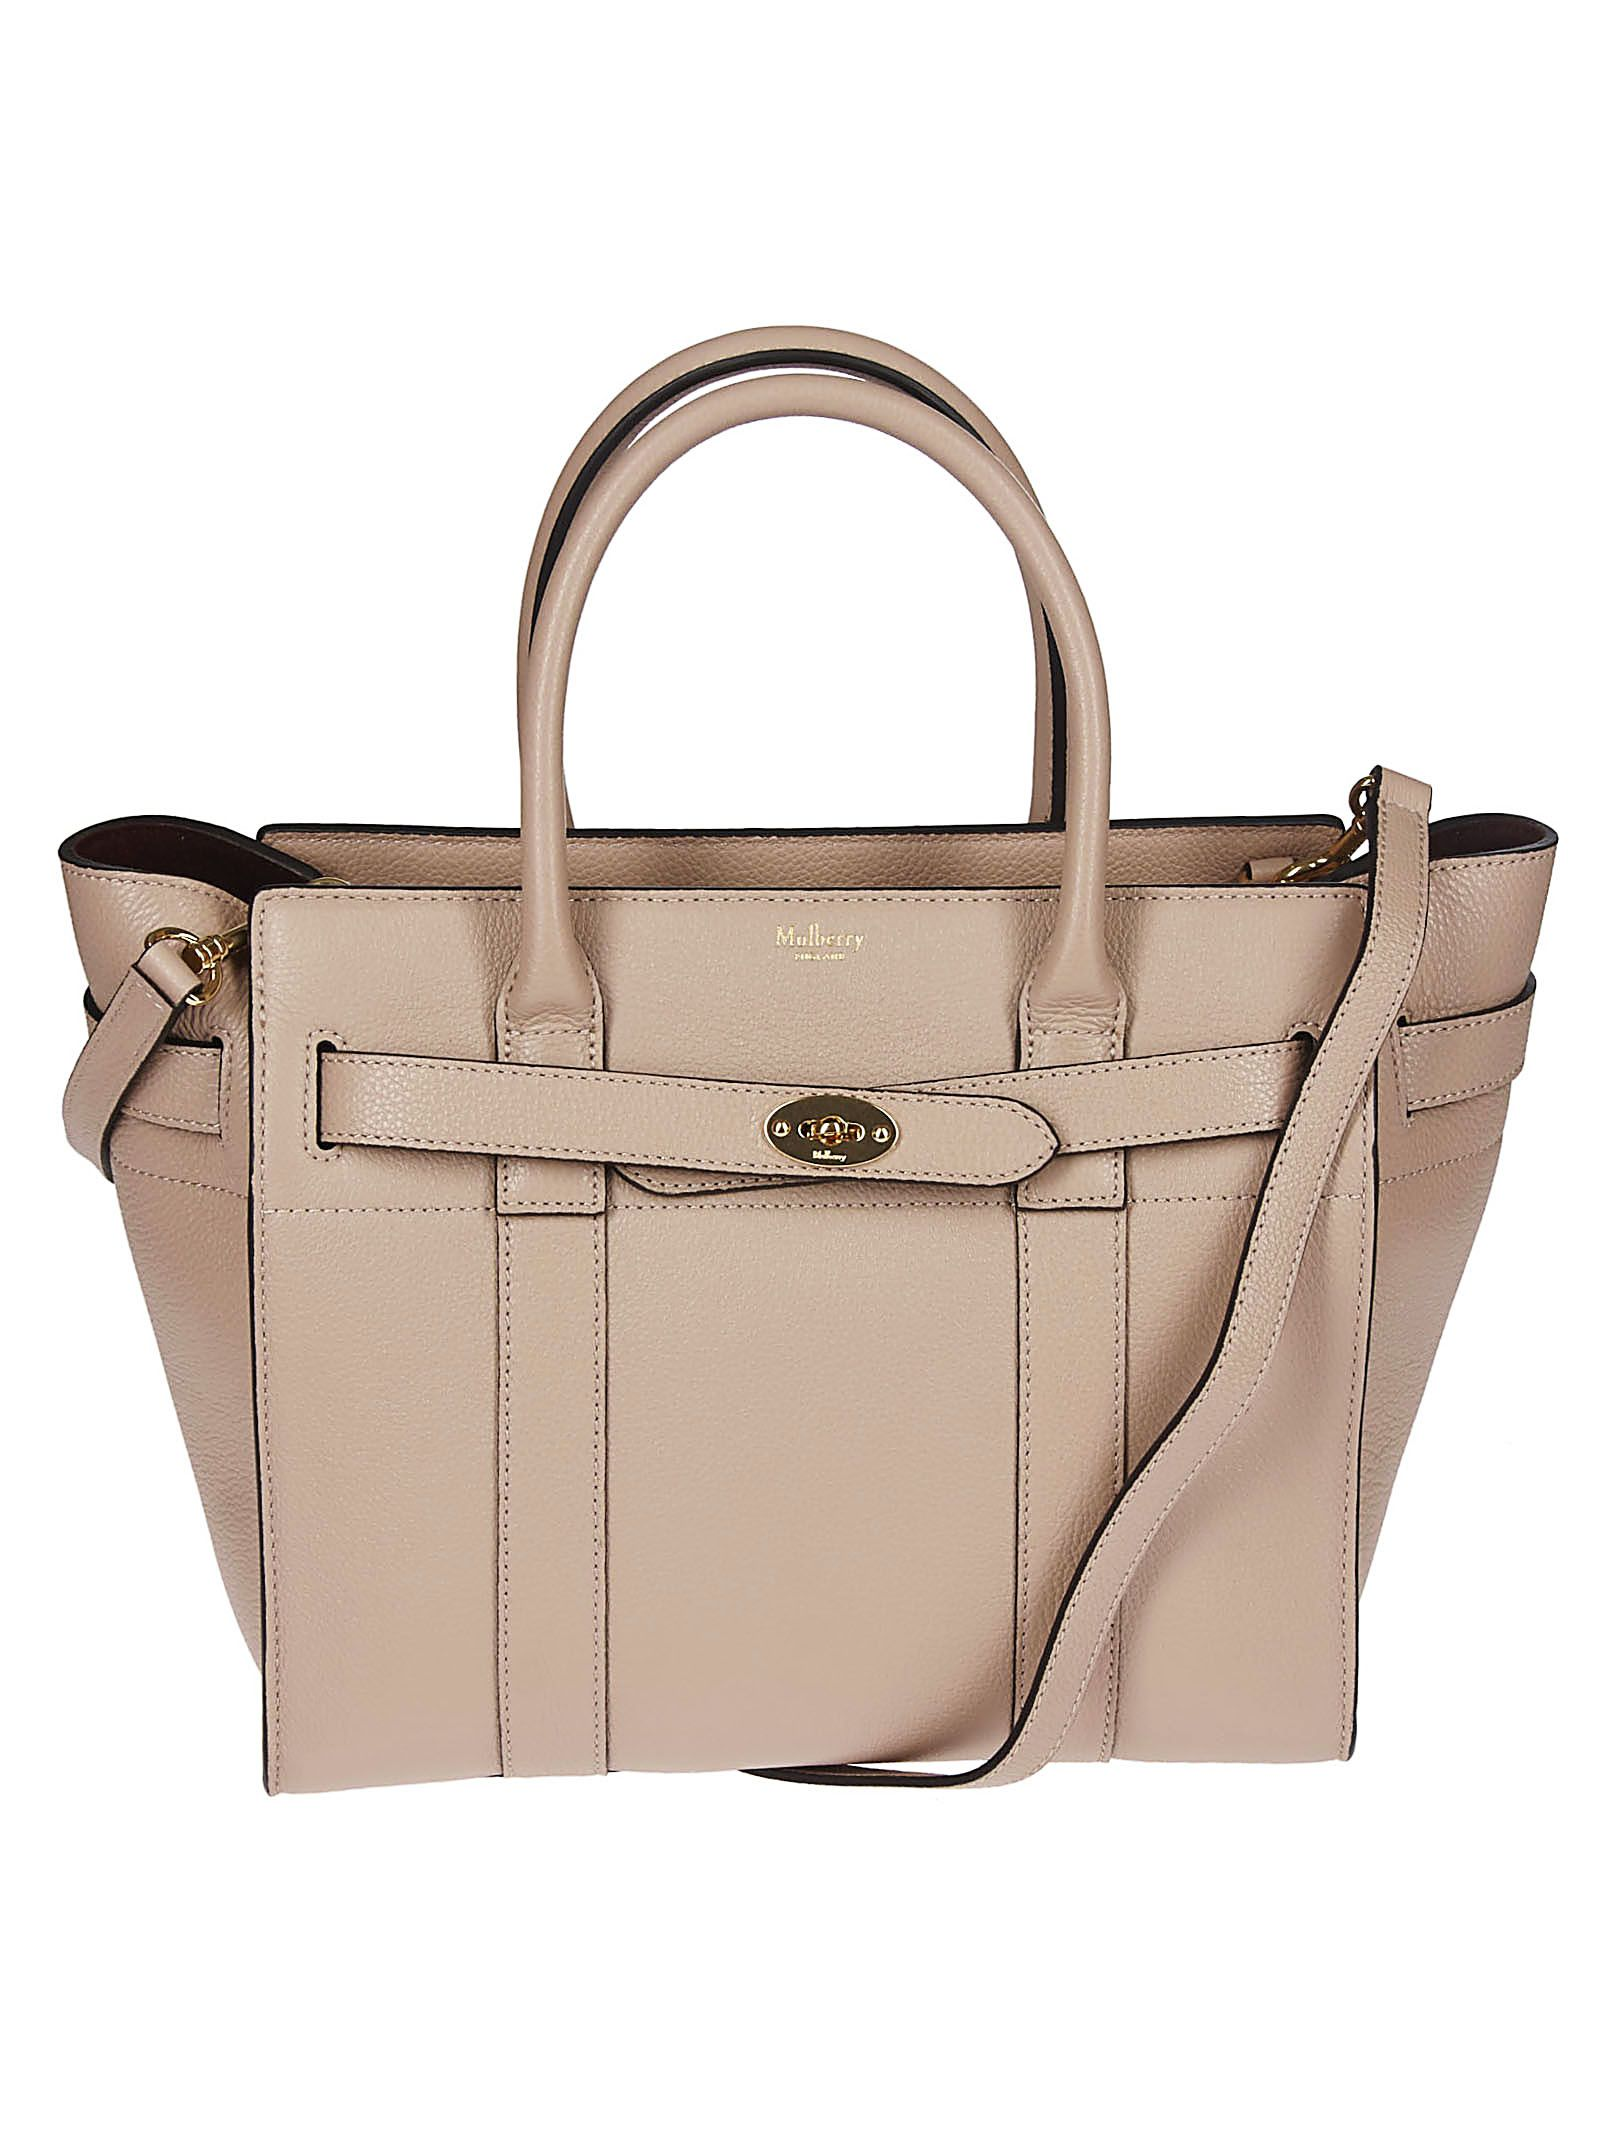 5099fb6a910 Mulberry Mulberry Small Zipped Bayswater Tote - Beige - 10829620 ...